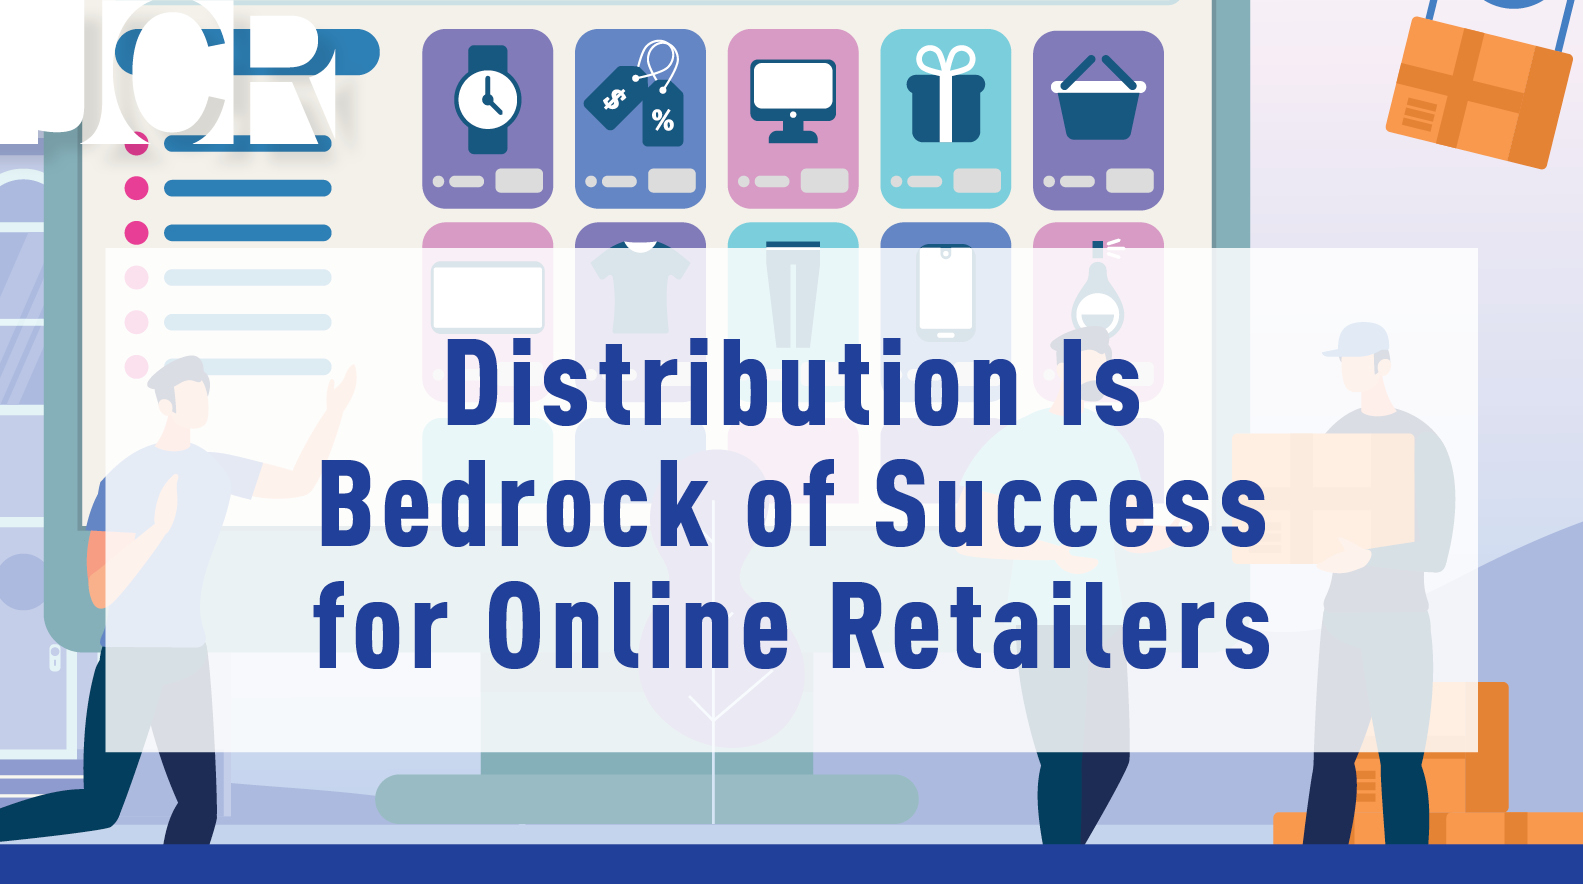 Distribution Is Bedrock of Success for Online Retailers